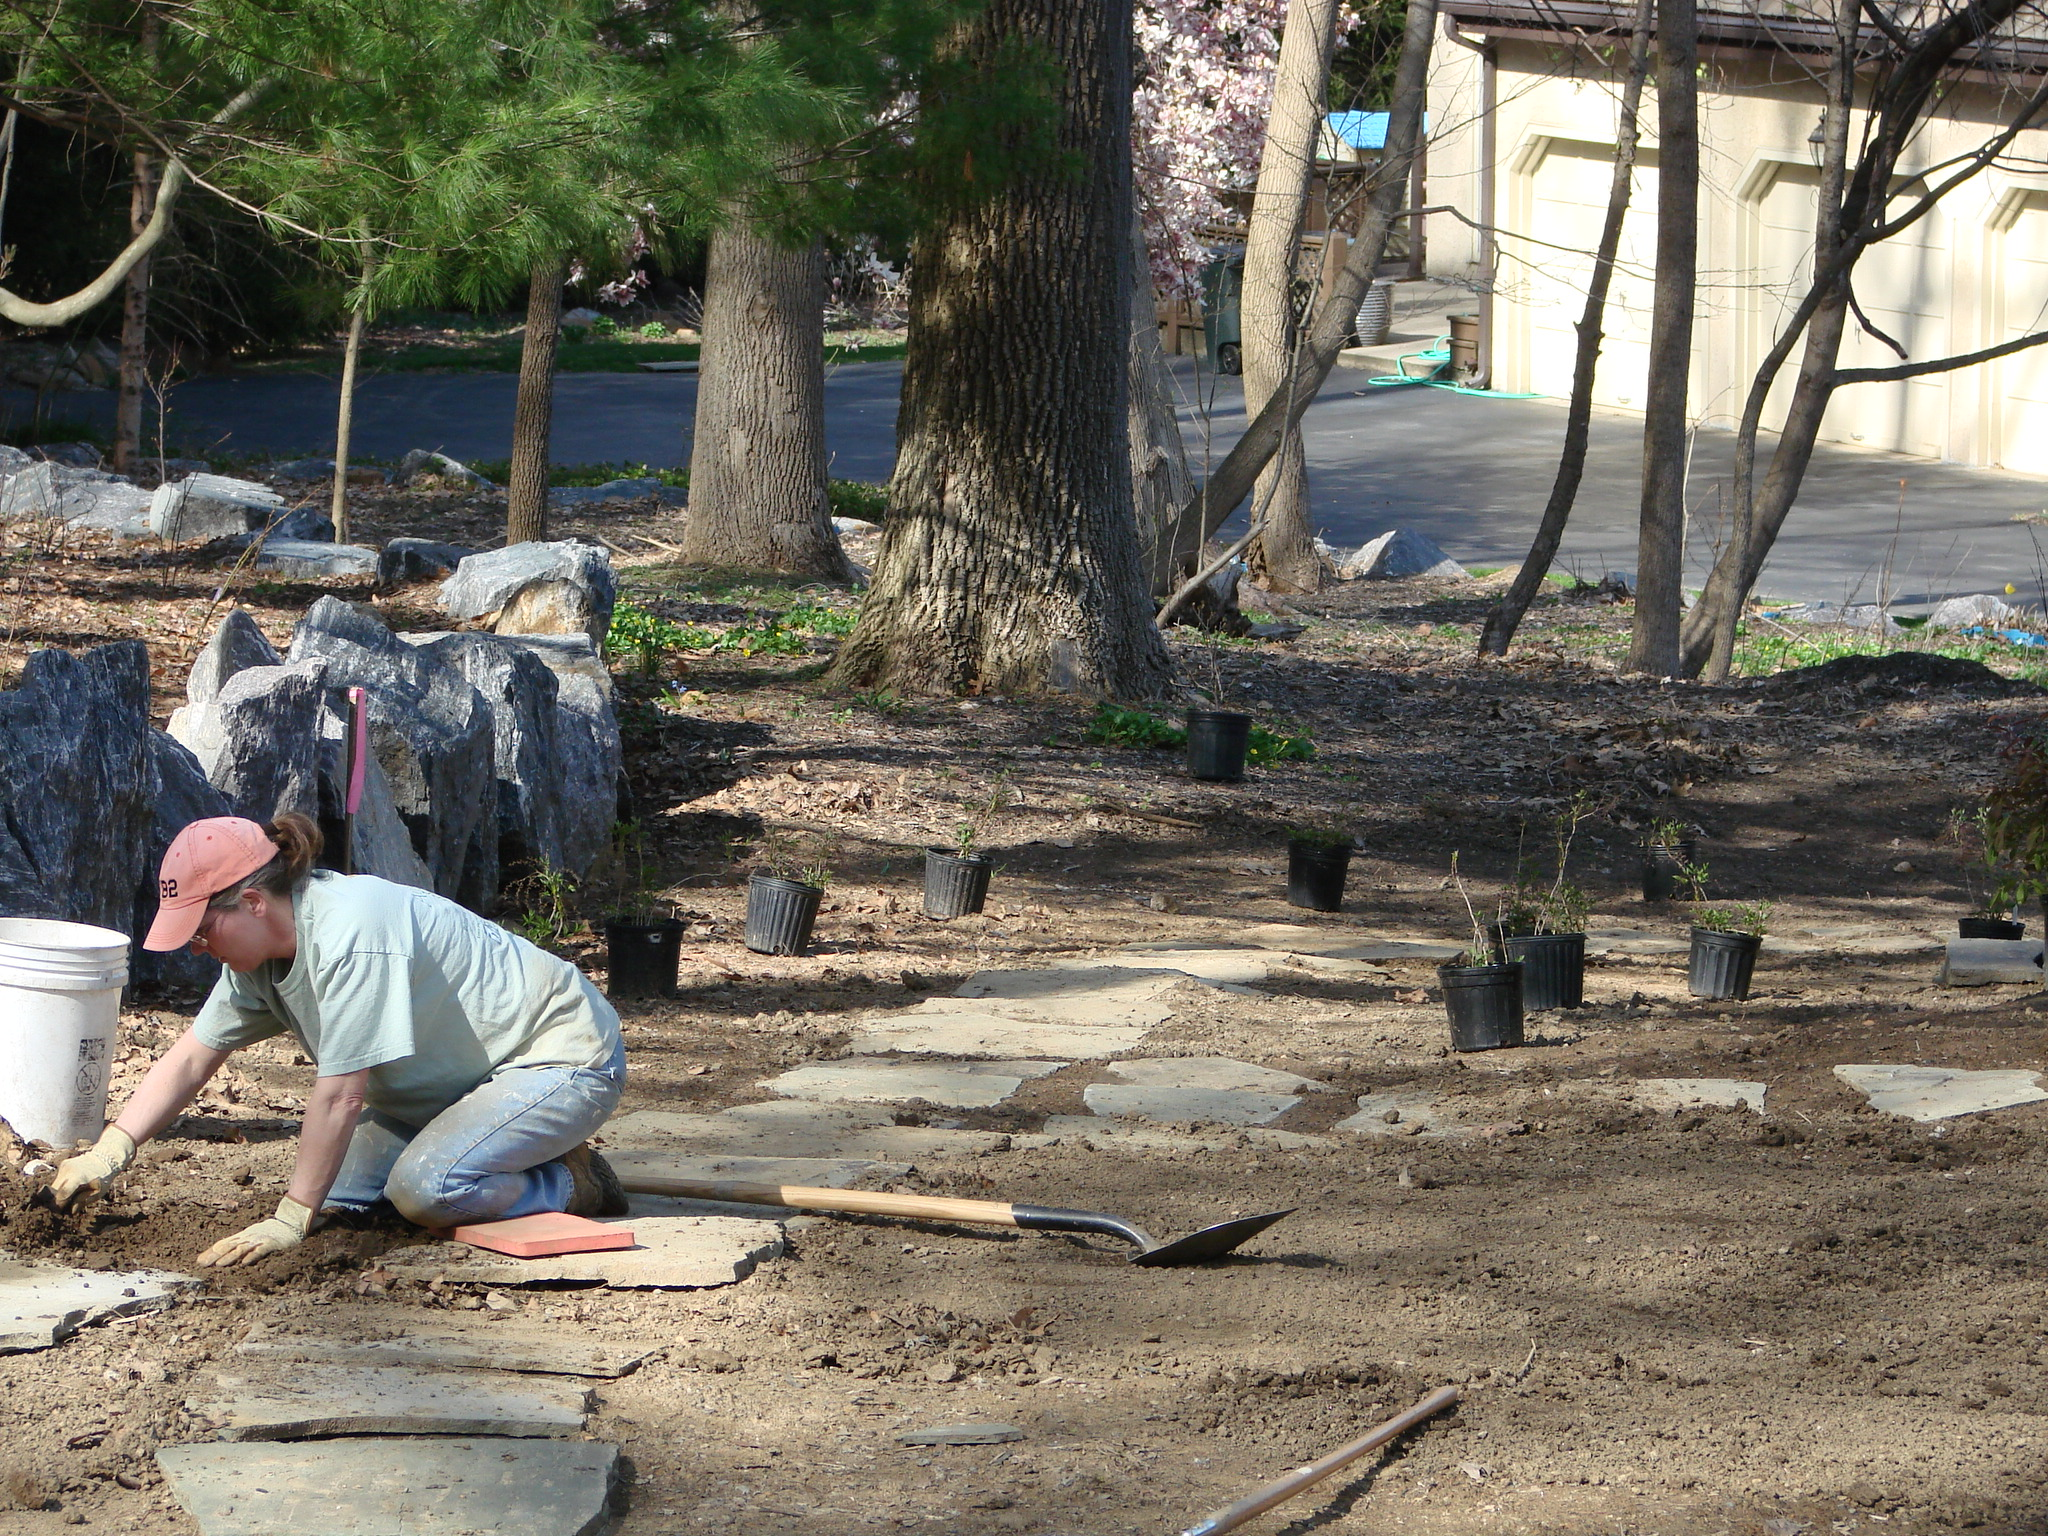 villanova Backyard during - yep, that's me and lots of slate and plants to be installed